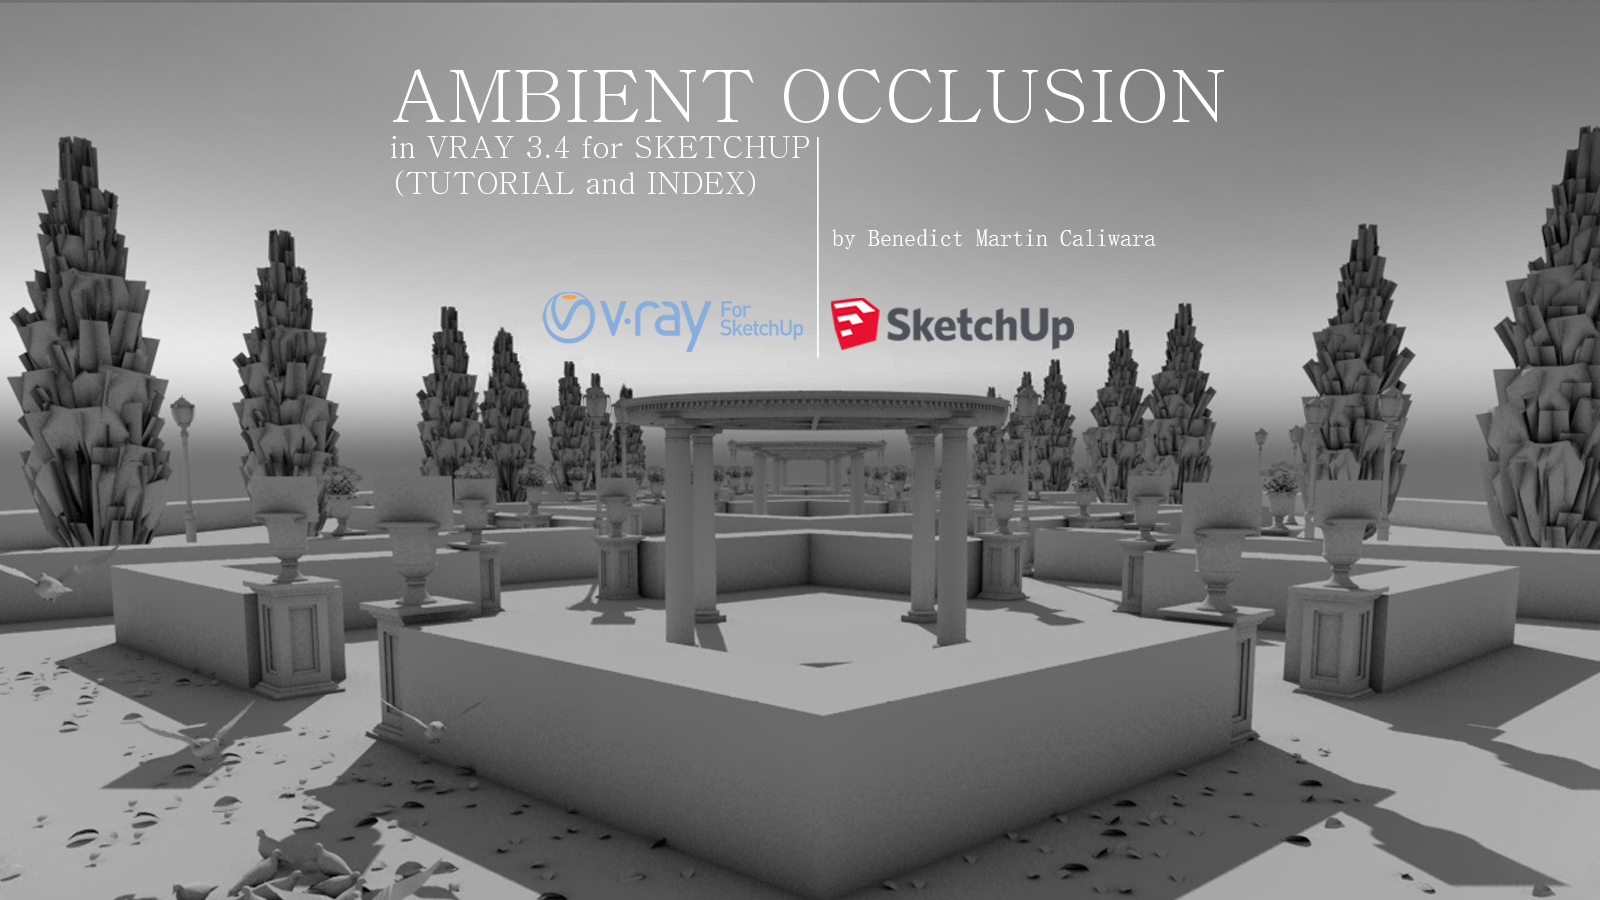 AMBIENT OCCLUSION in VRAY 3 4 for SKETCHUP (TUTORIAL and INDEX)